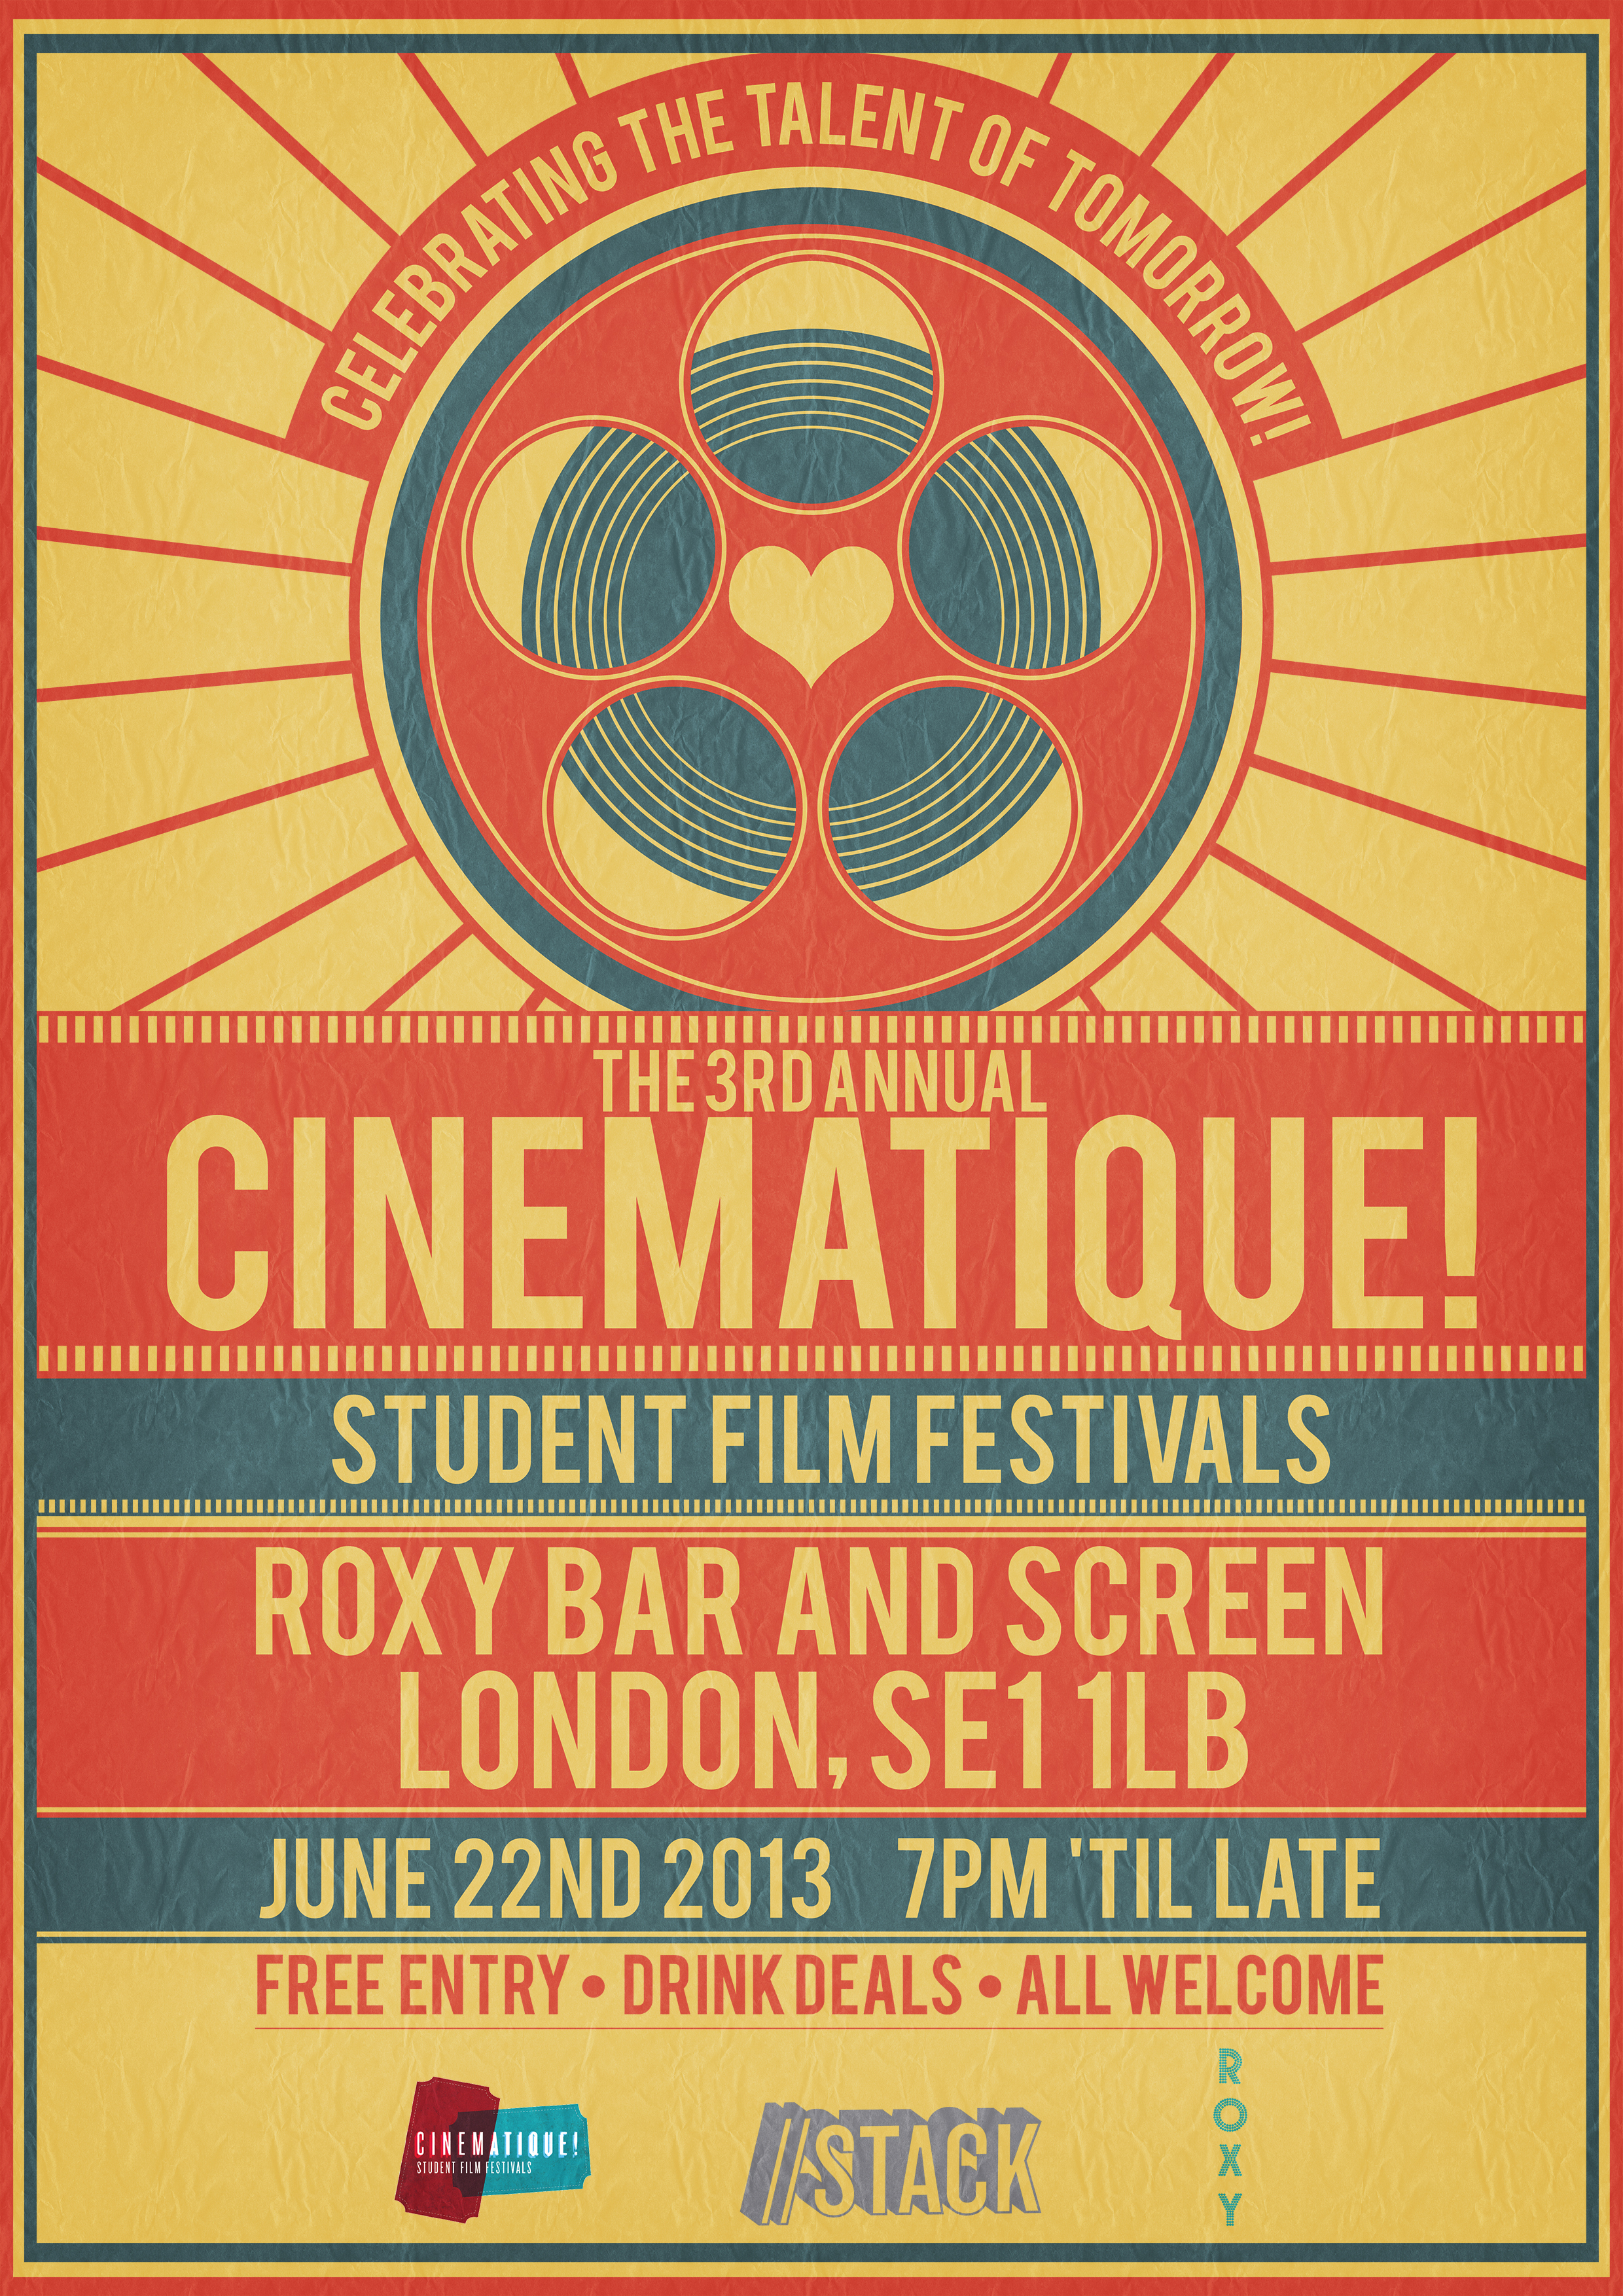 Cinematique! Film Festival Poster 2013 by RicGrayDesign on ...